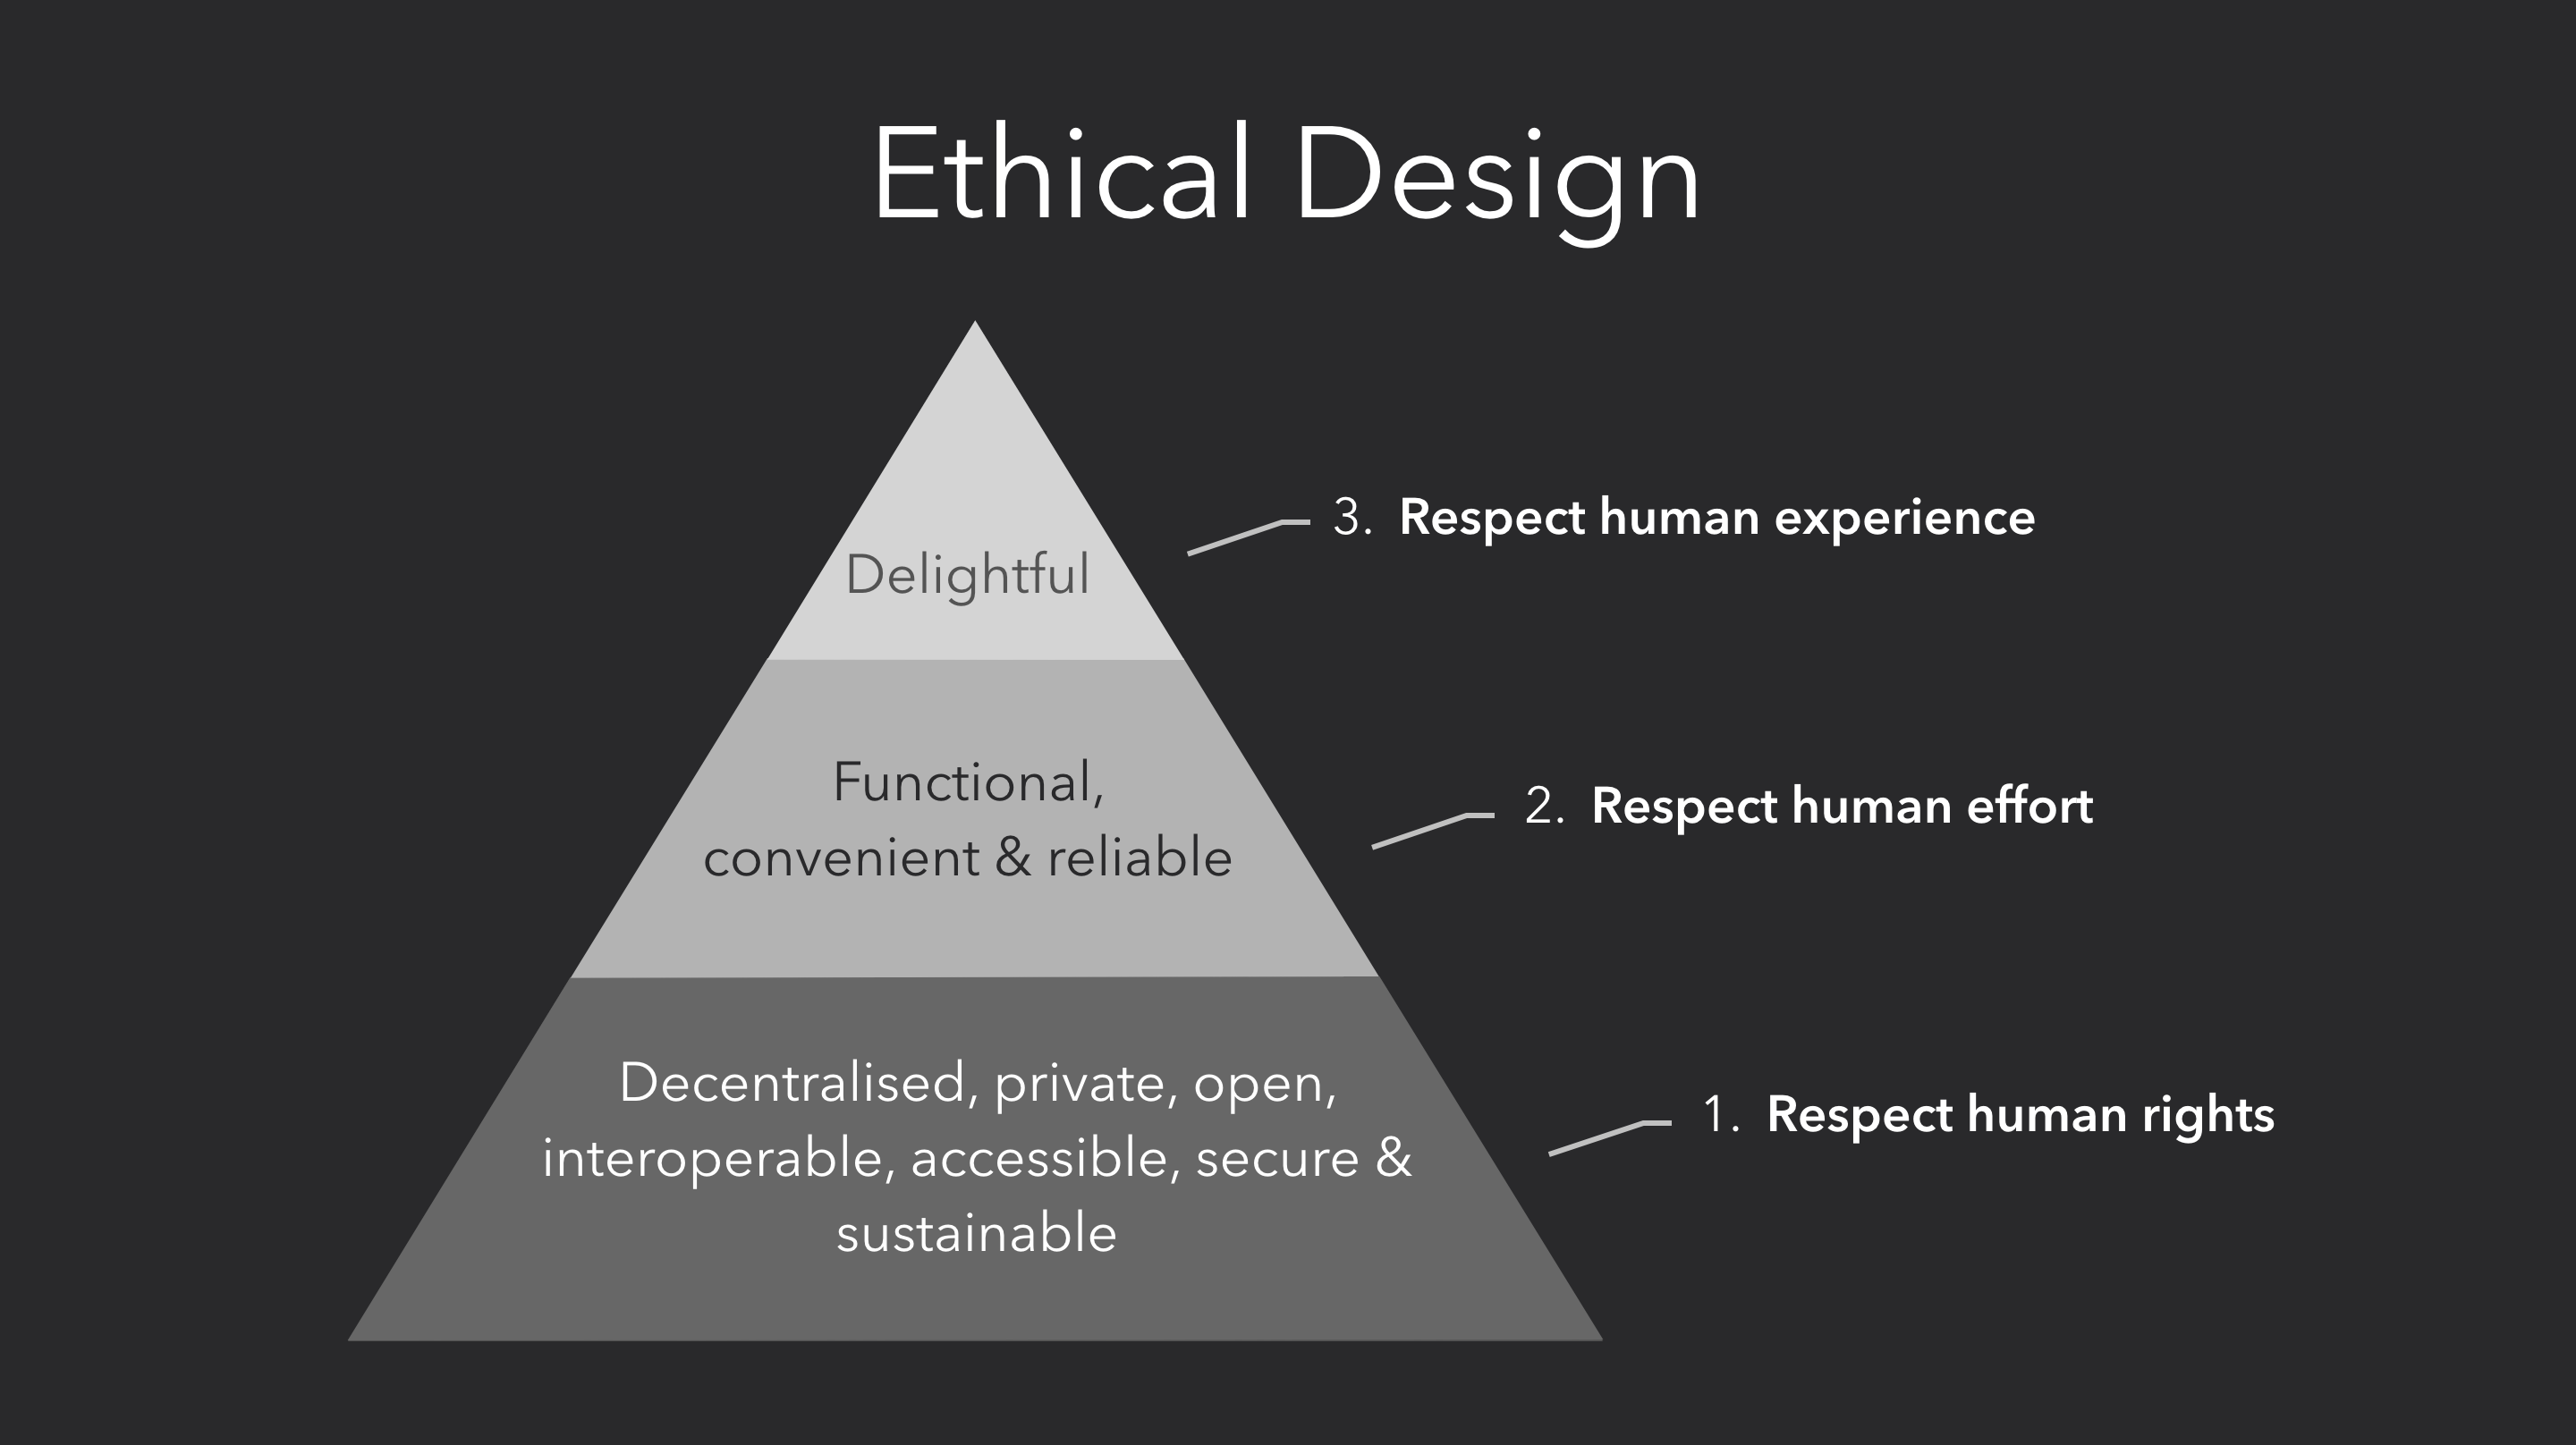 Ethical design pyramid: products should respect human rights, effort, and experience.